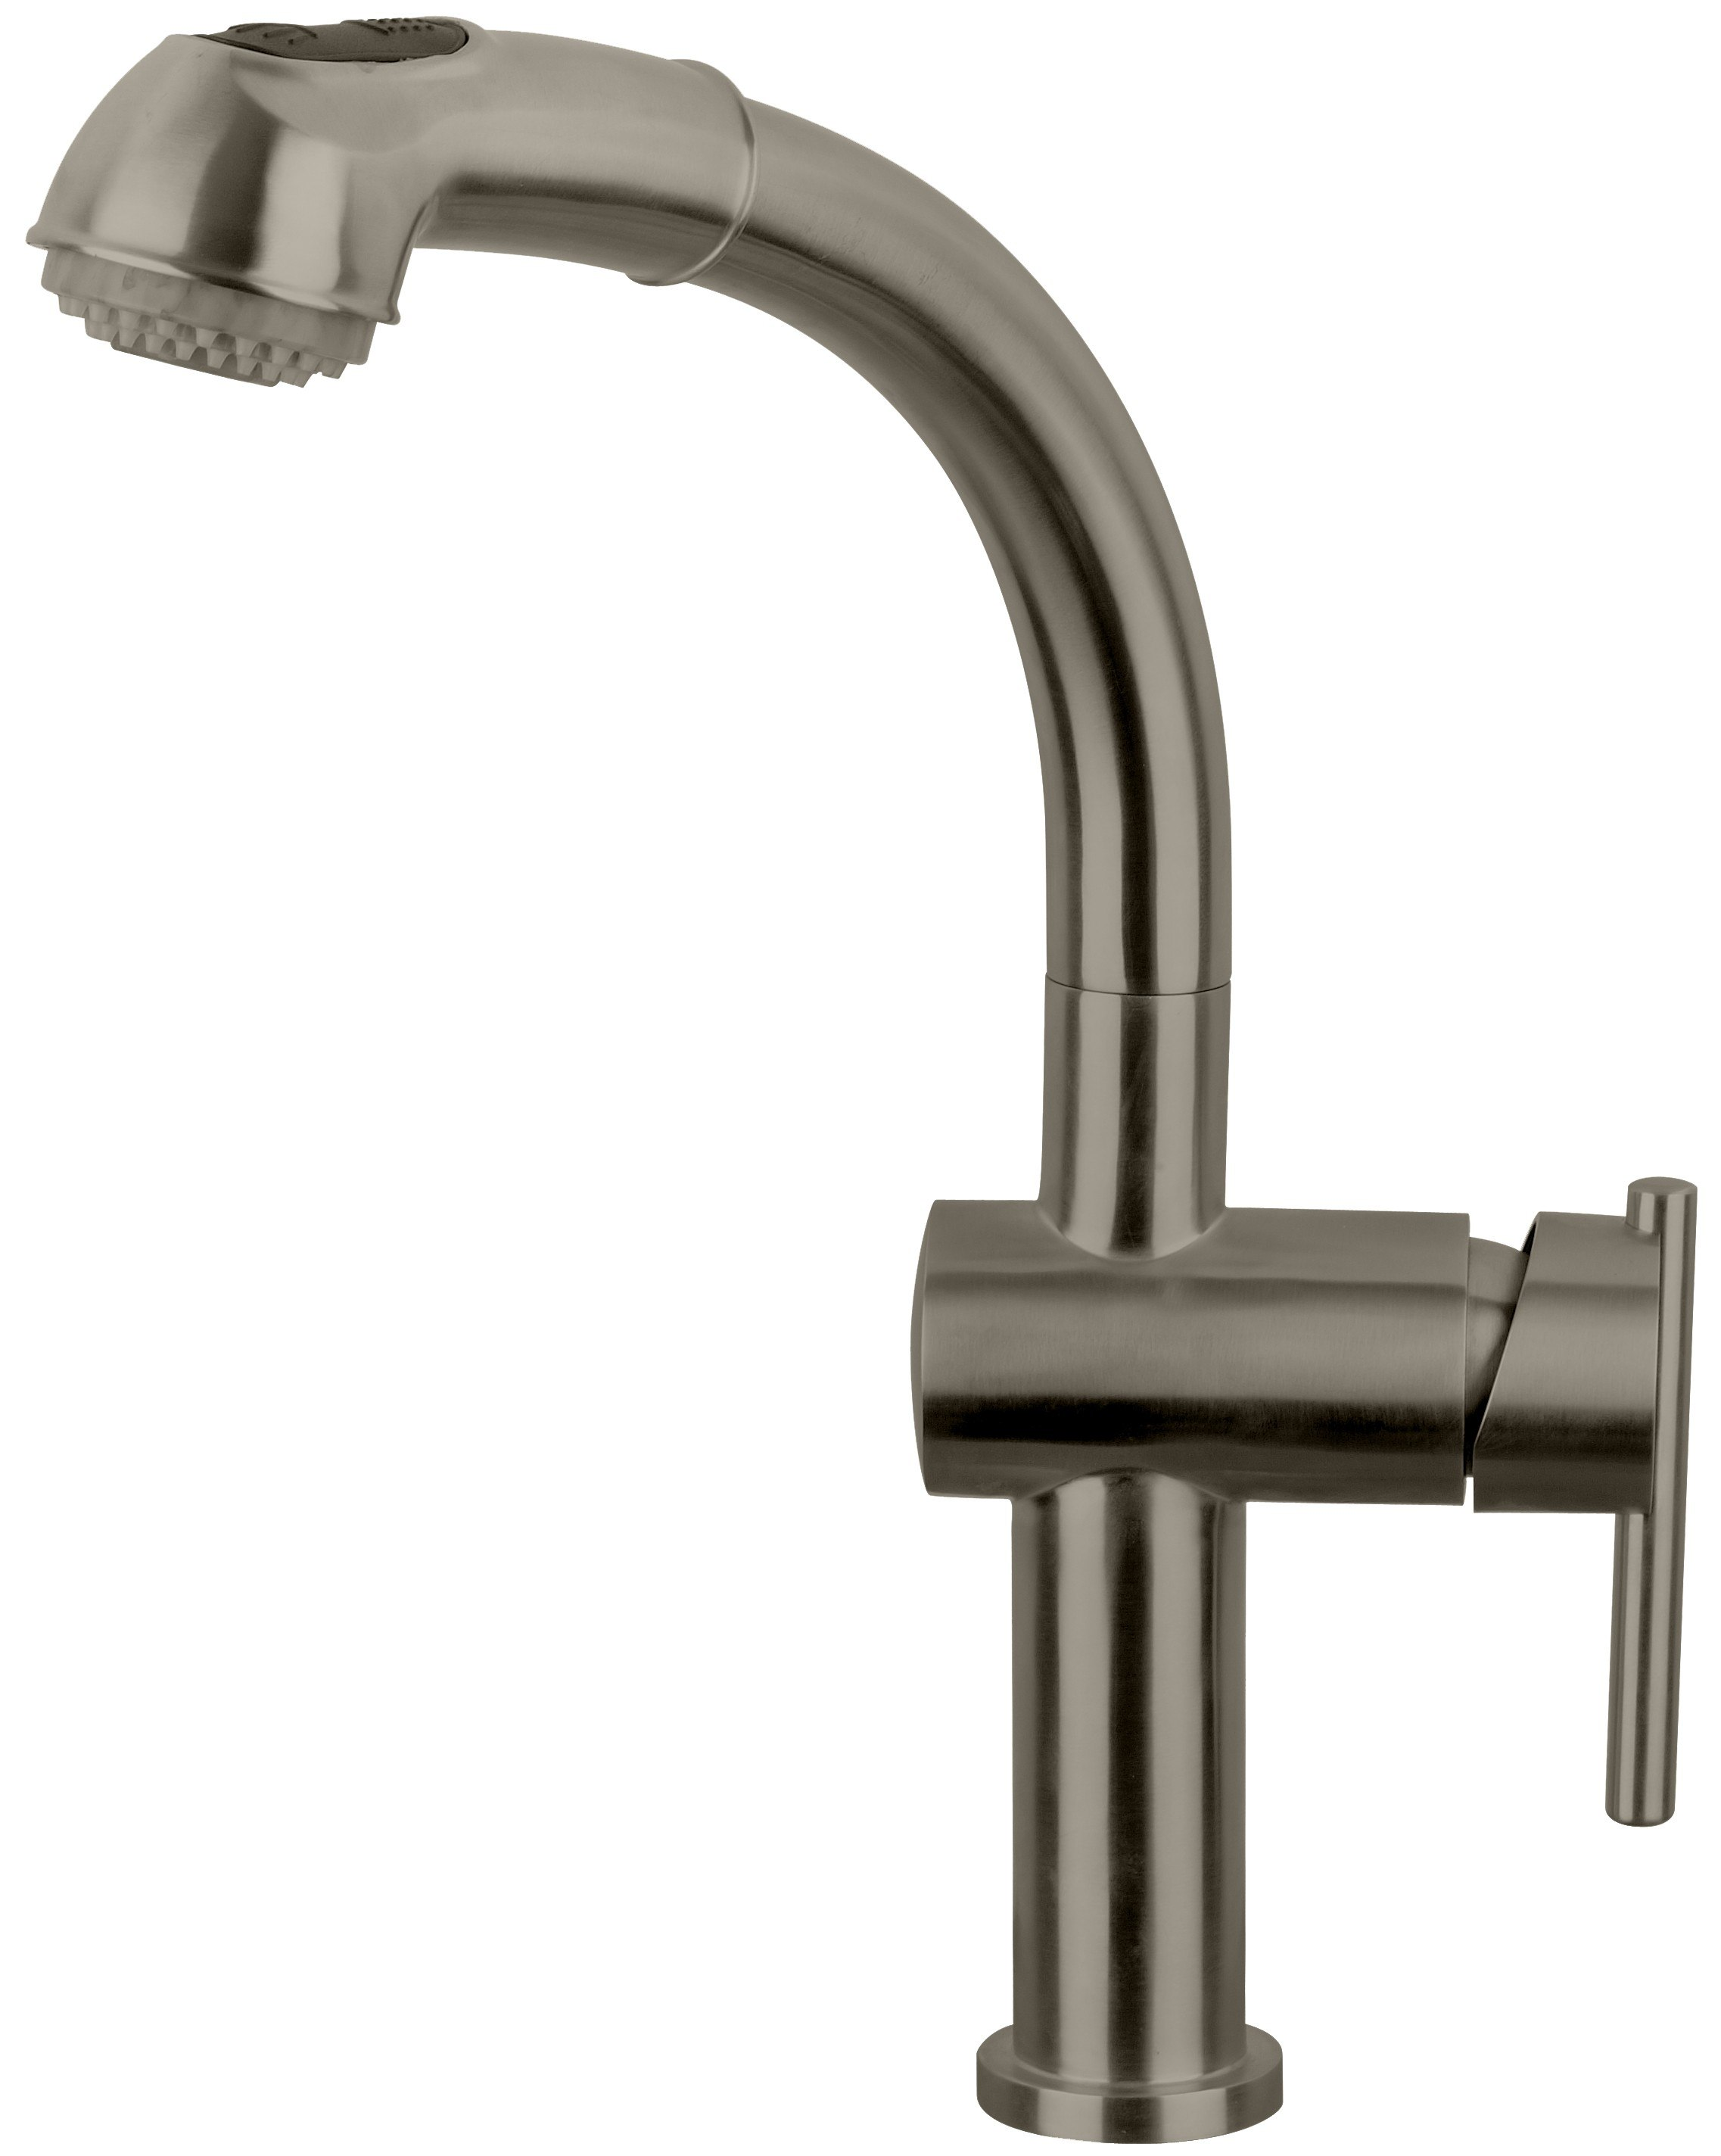 WHITEHAUS WHS1991-SK-BSS WATERHAUS LEAD FREE, SINGLE-HOLE FAUCET WITH PULL OUT SPRAY HEAD